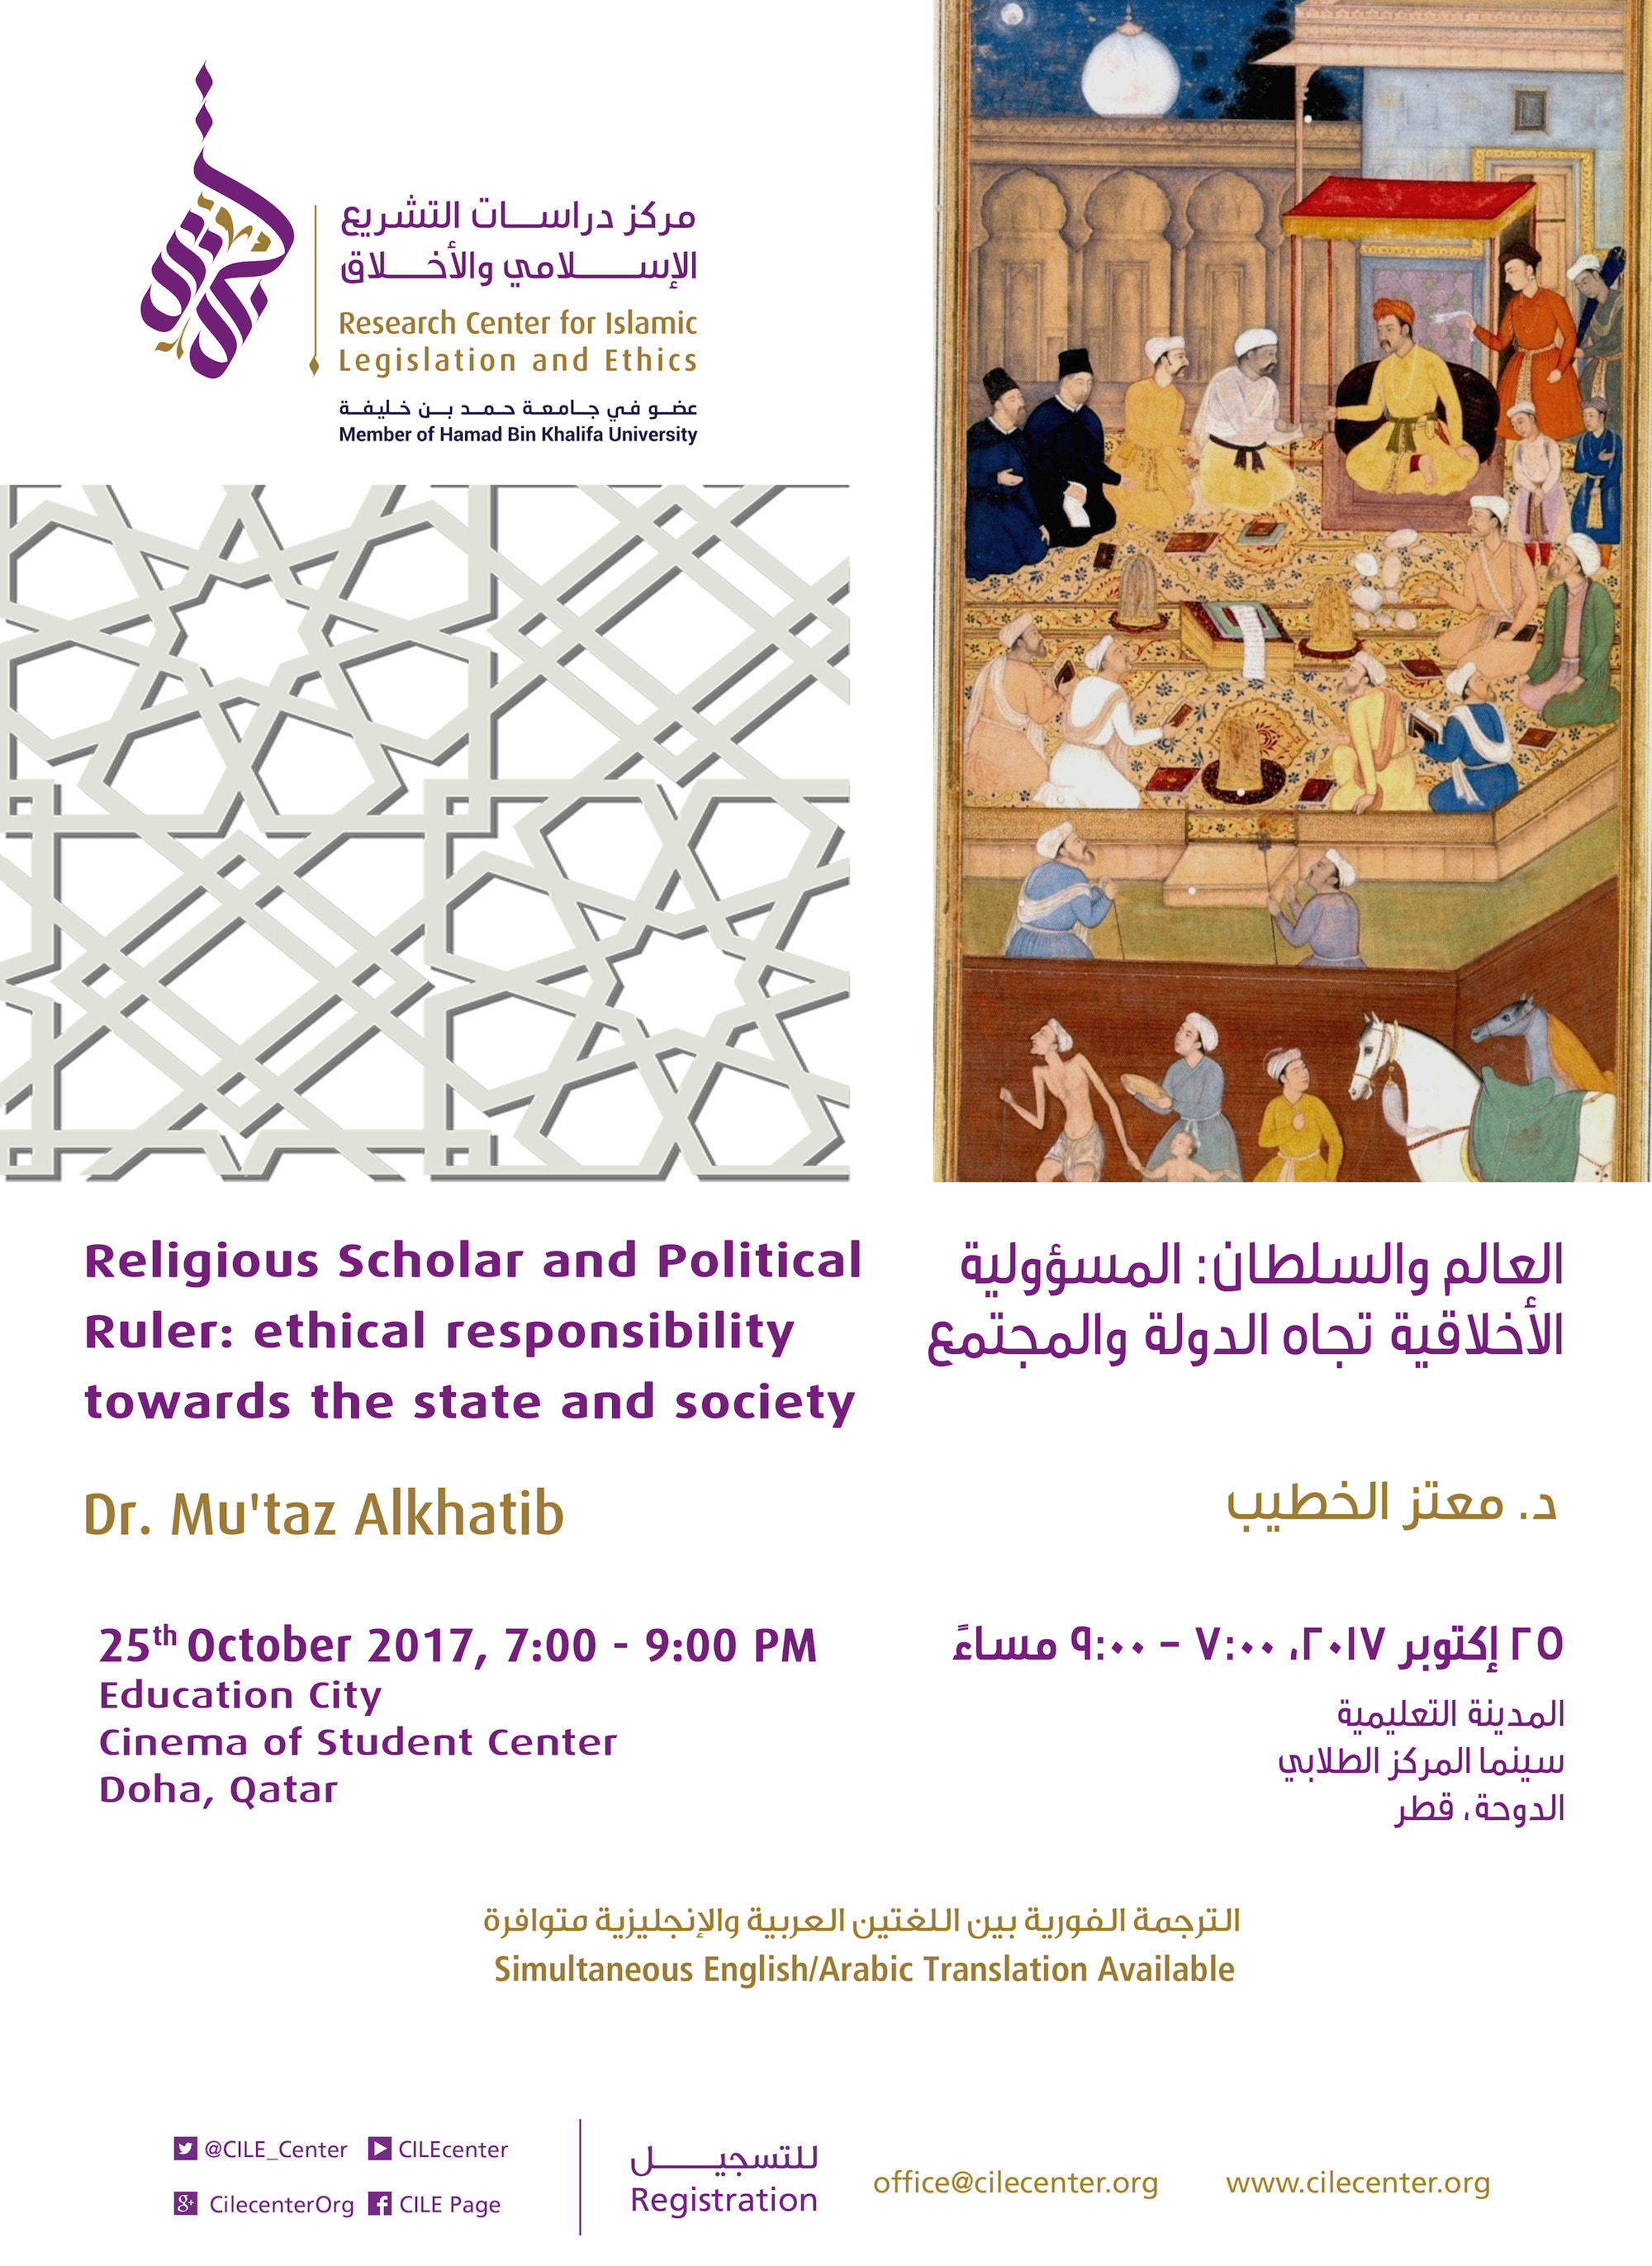 05/2017 Migrant Labour Reforms in Qatar: ongoing issues of rights and ethics